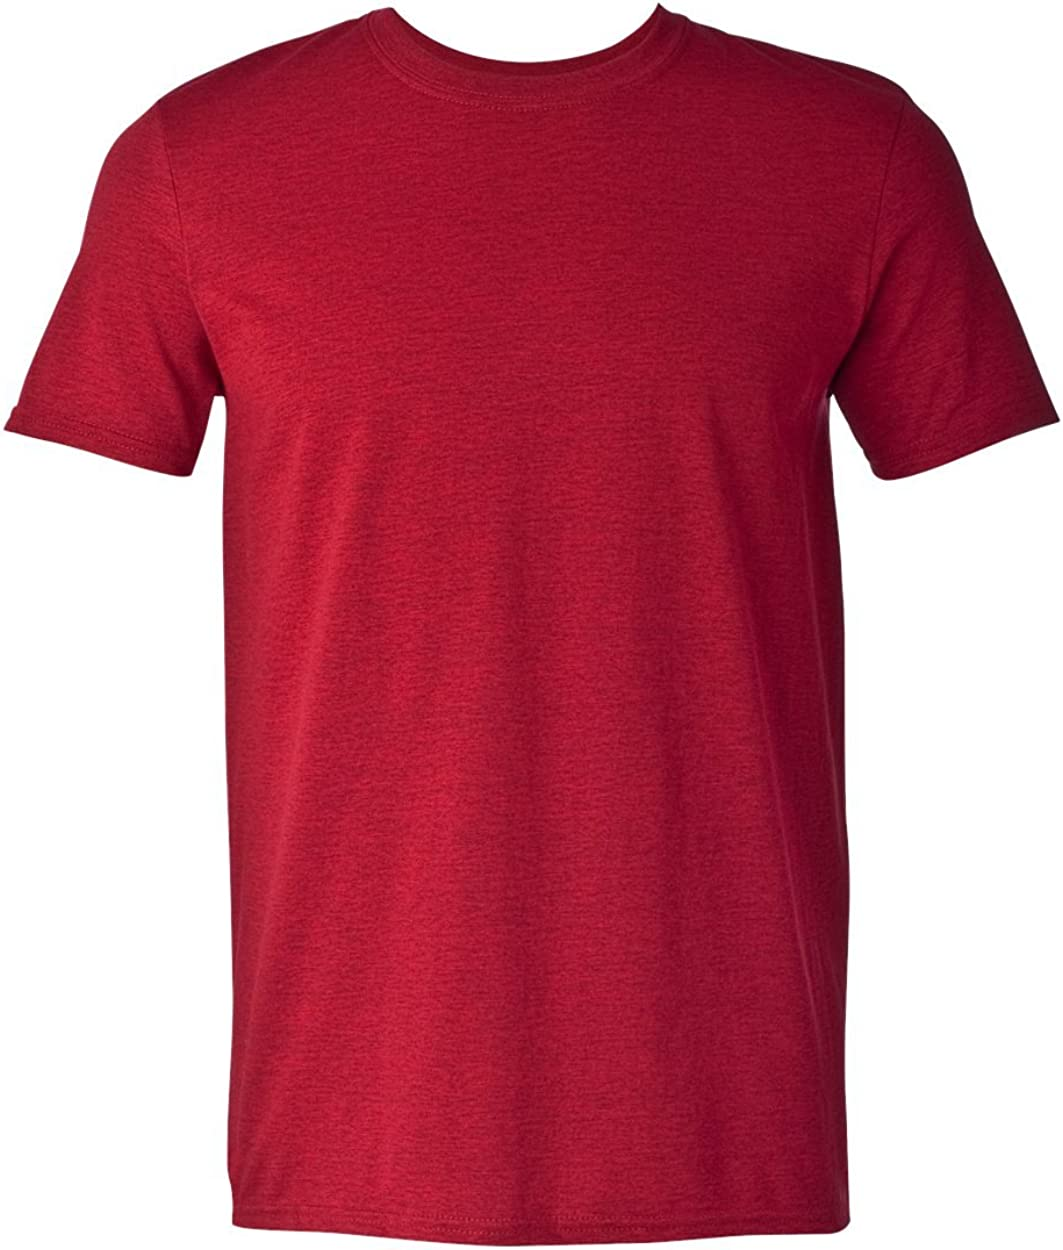 4.5 oz. T-Shirt (G640) Antique Cherry Red, M (Pack of 12)